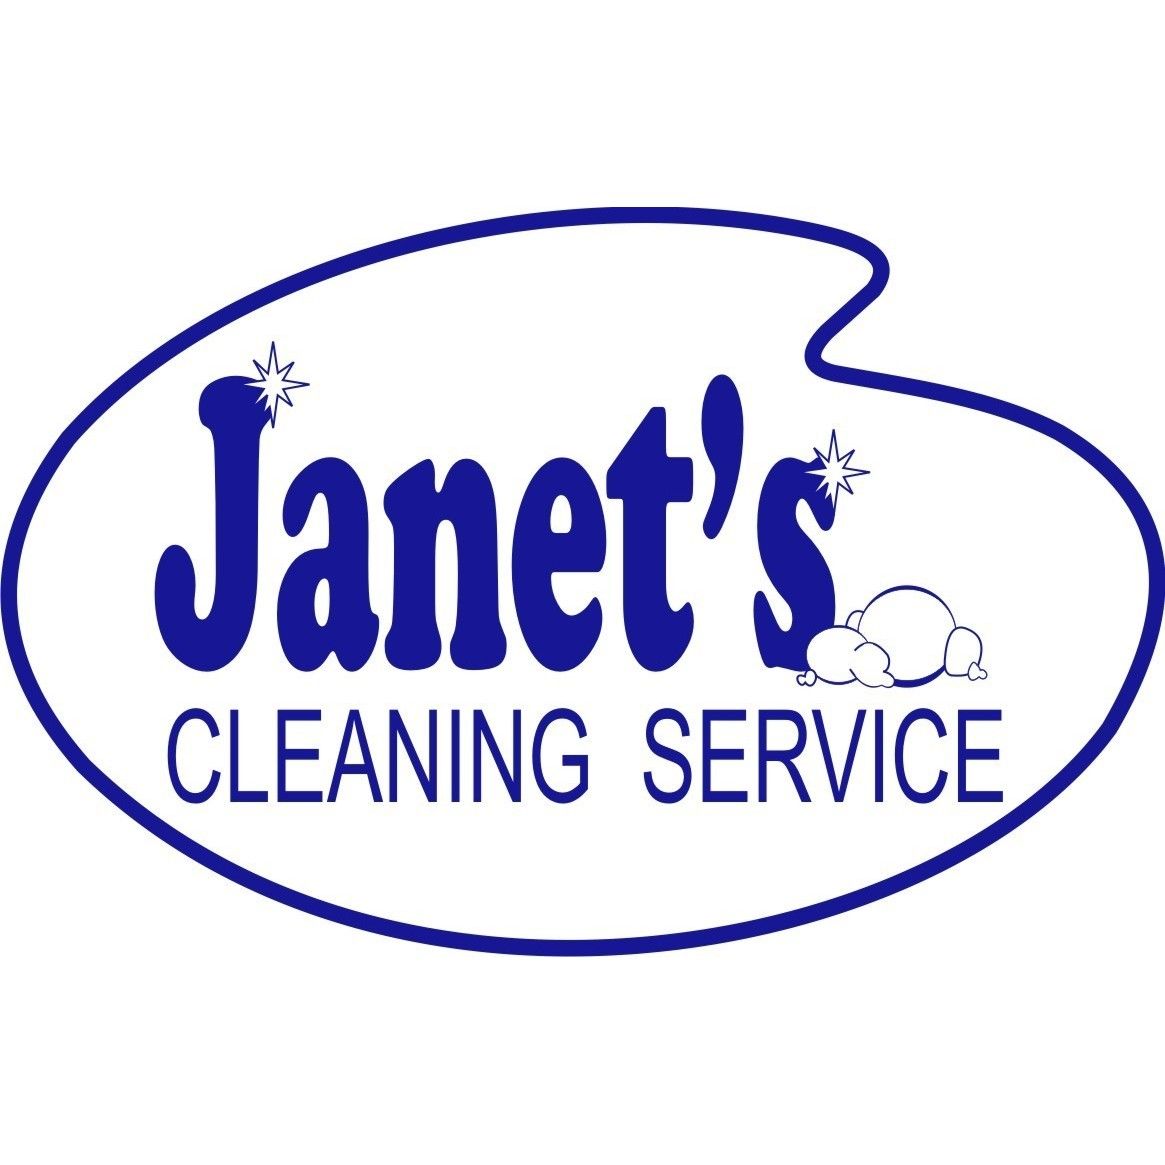 Janet's Cleaning Service